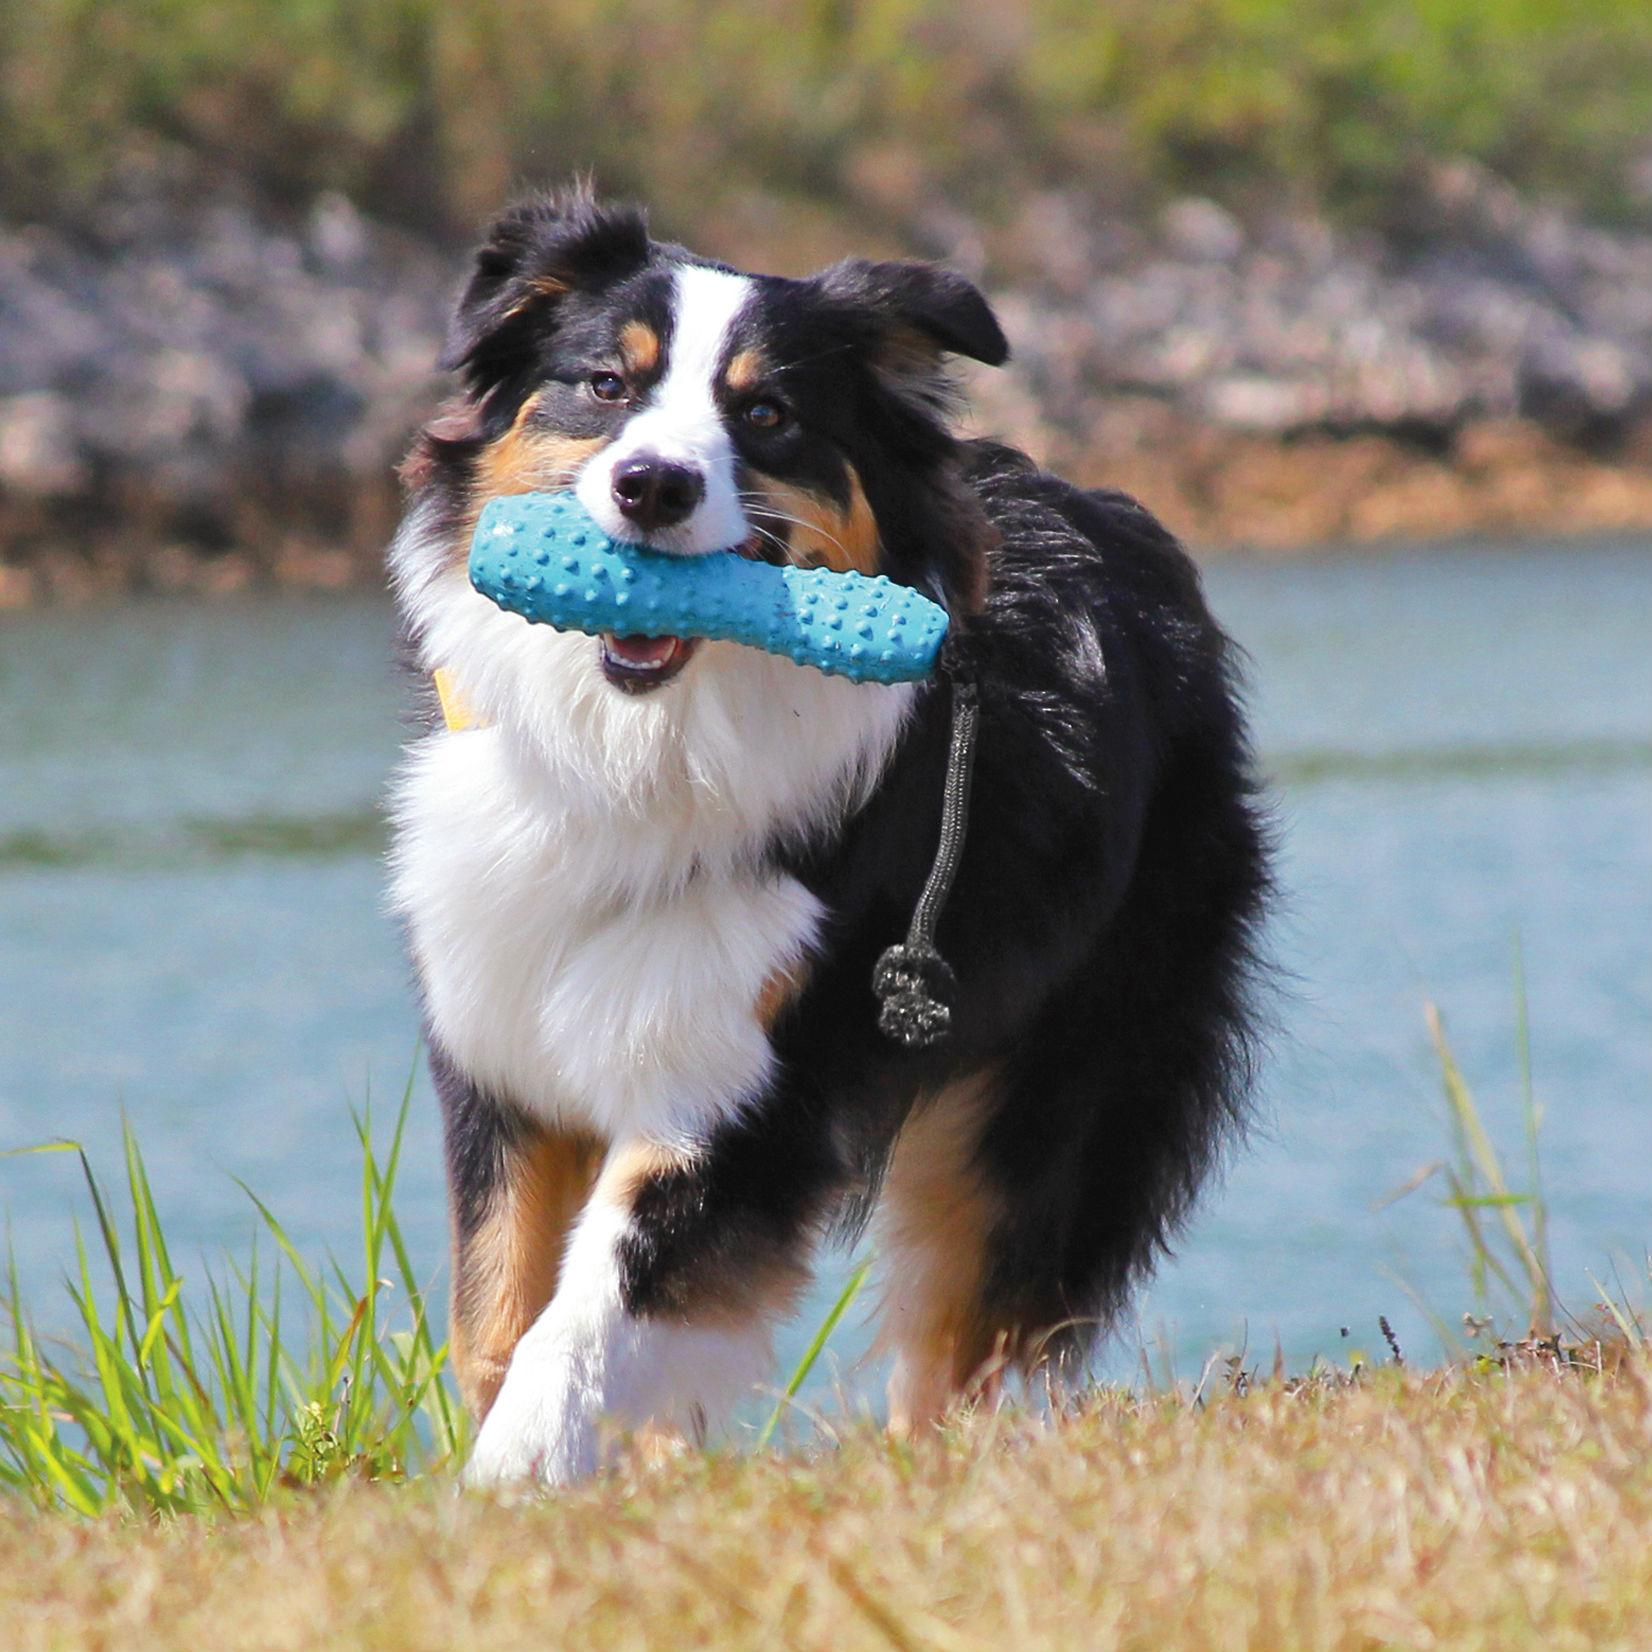 Gourdo Interactive Dog Toy by RuffWear - Metolius Blue